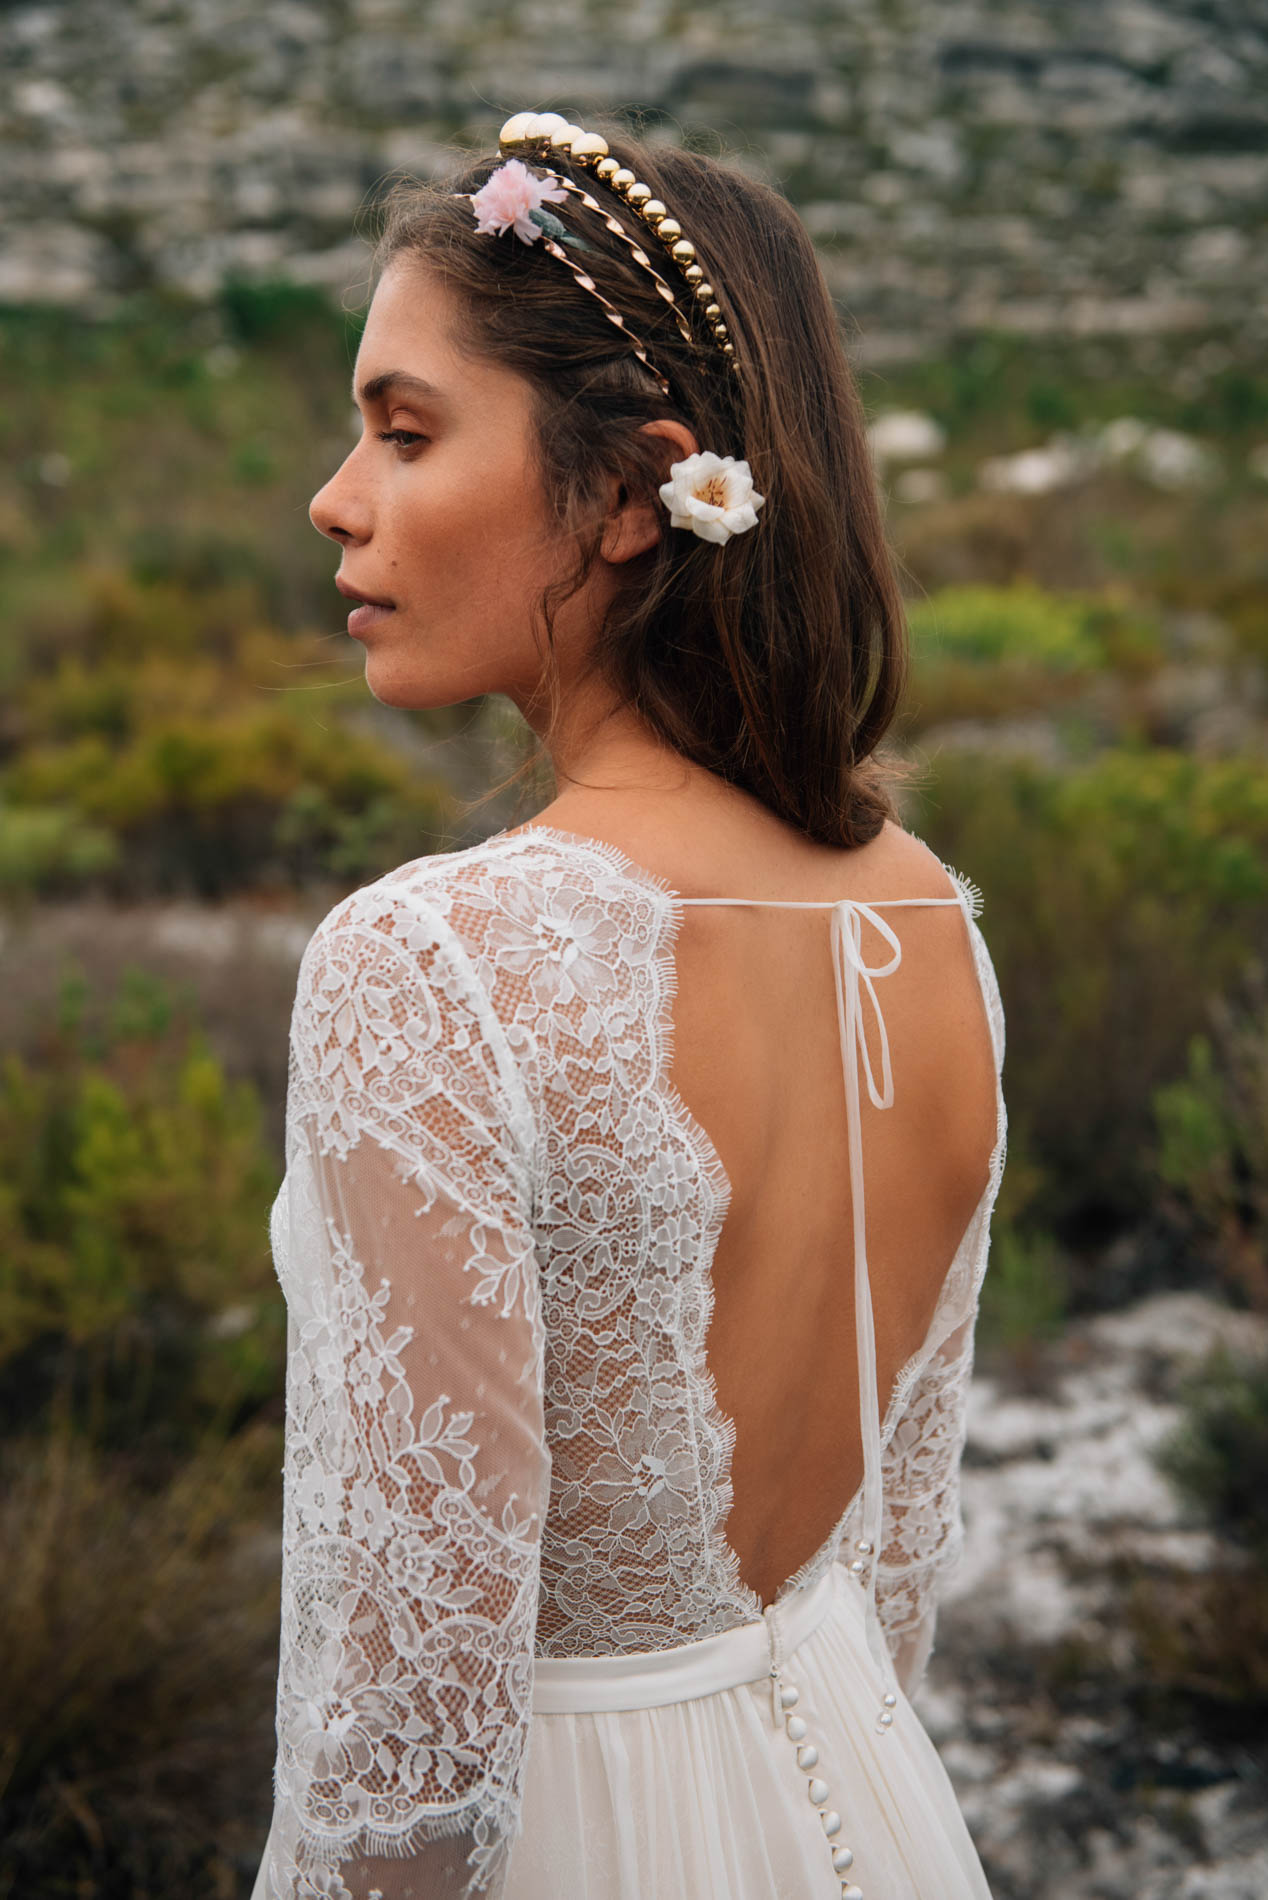 Naya by Catherine Deane Exclusive bridal event, Hannah Elizabeth Bridal, Botley. Hosting outstanding events for Hampshire Brides